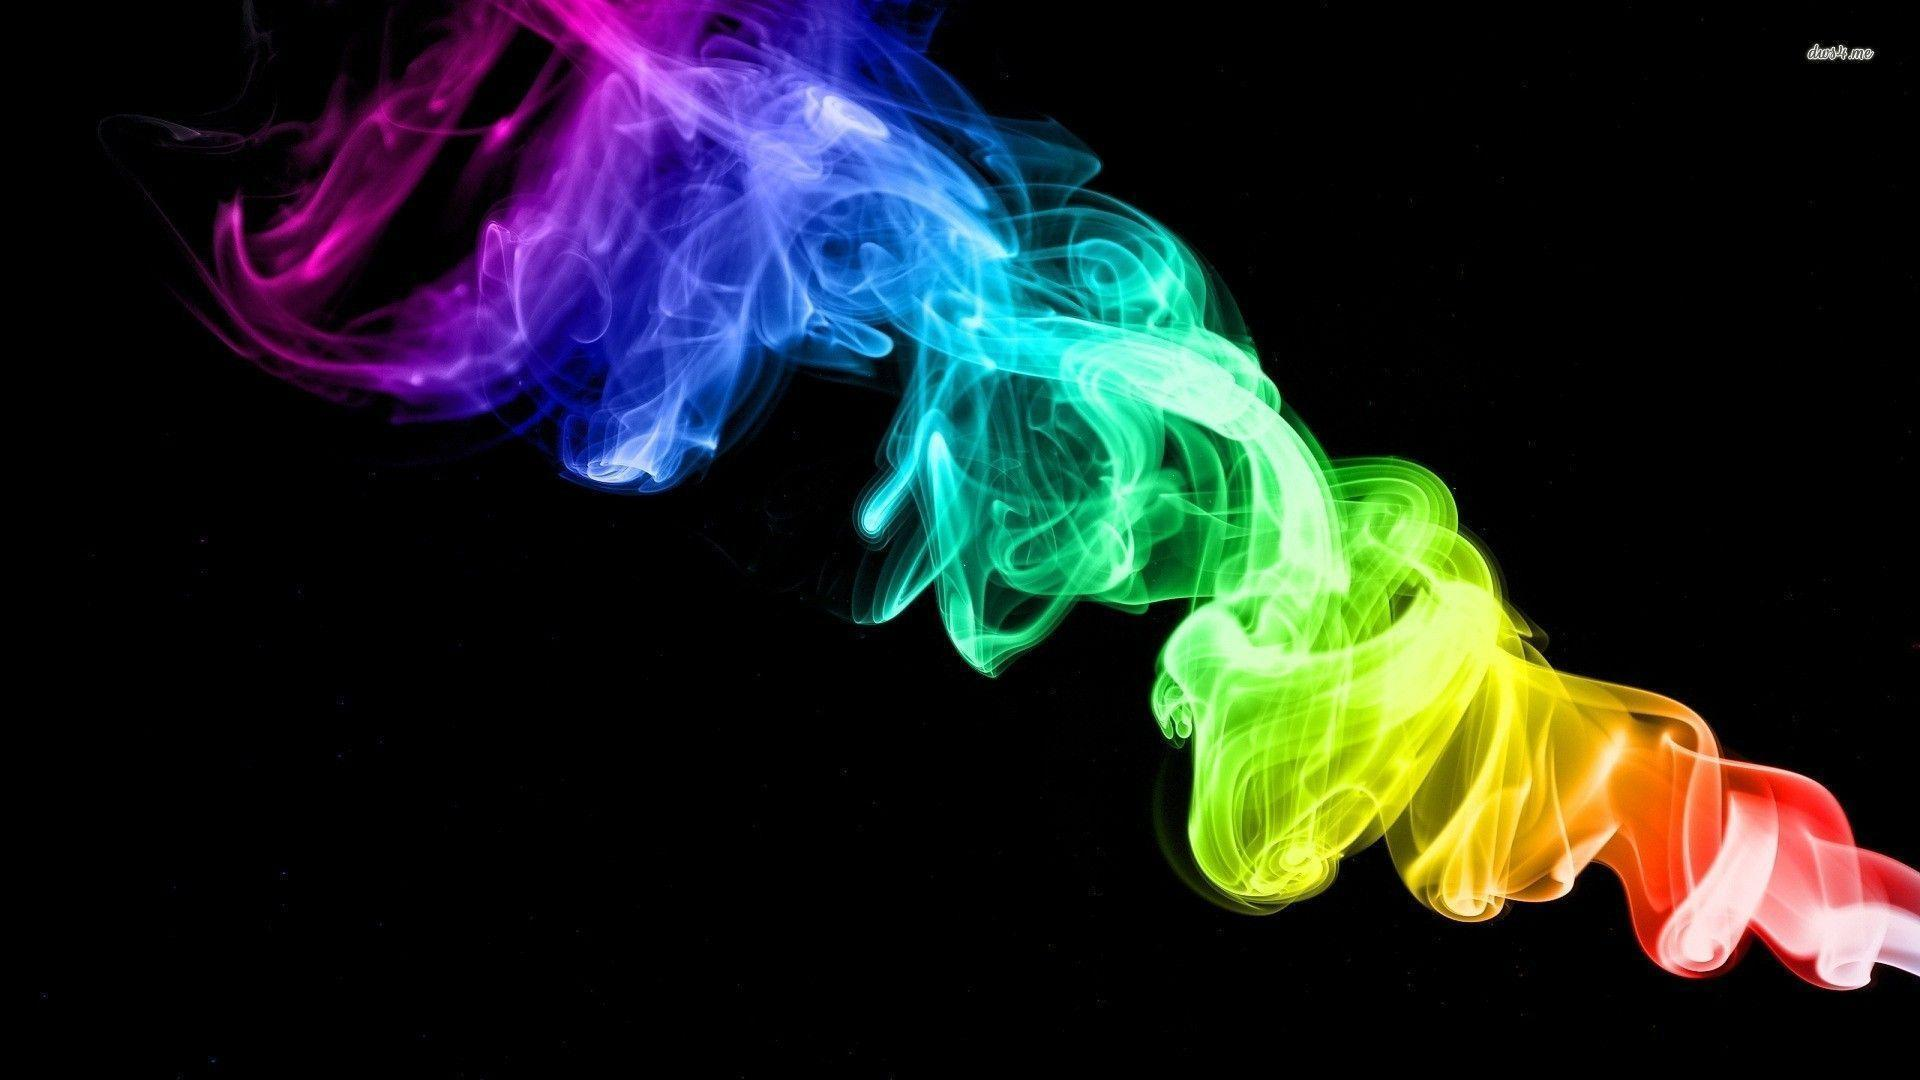 Awesome Neon Backgrounds